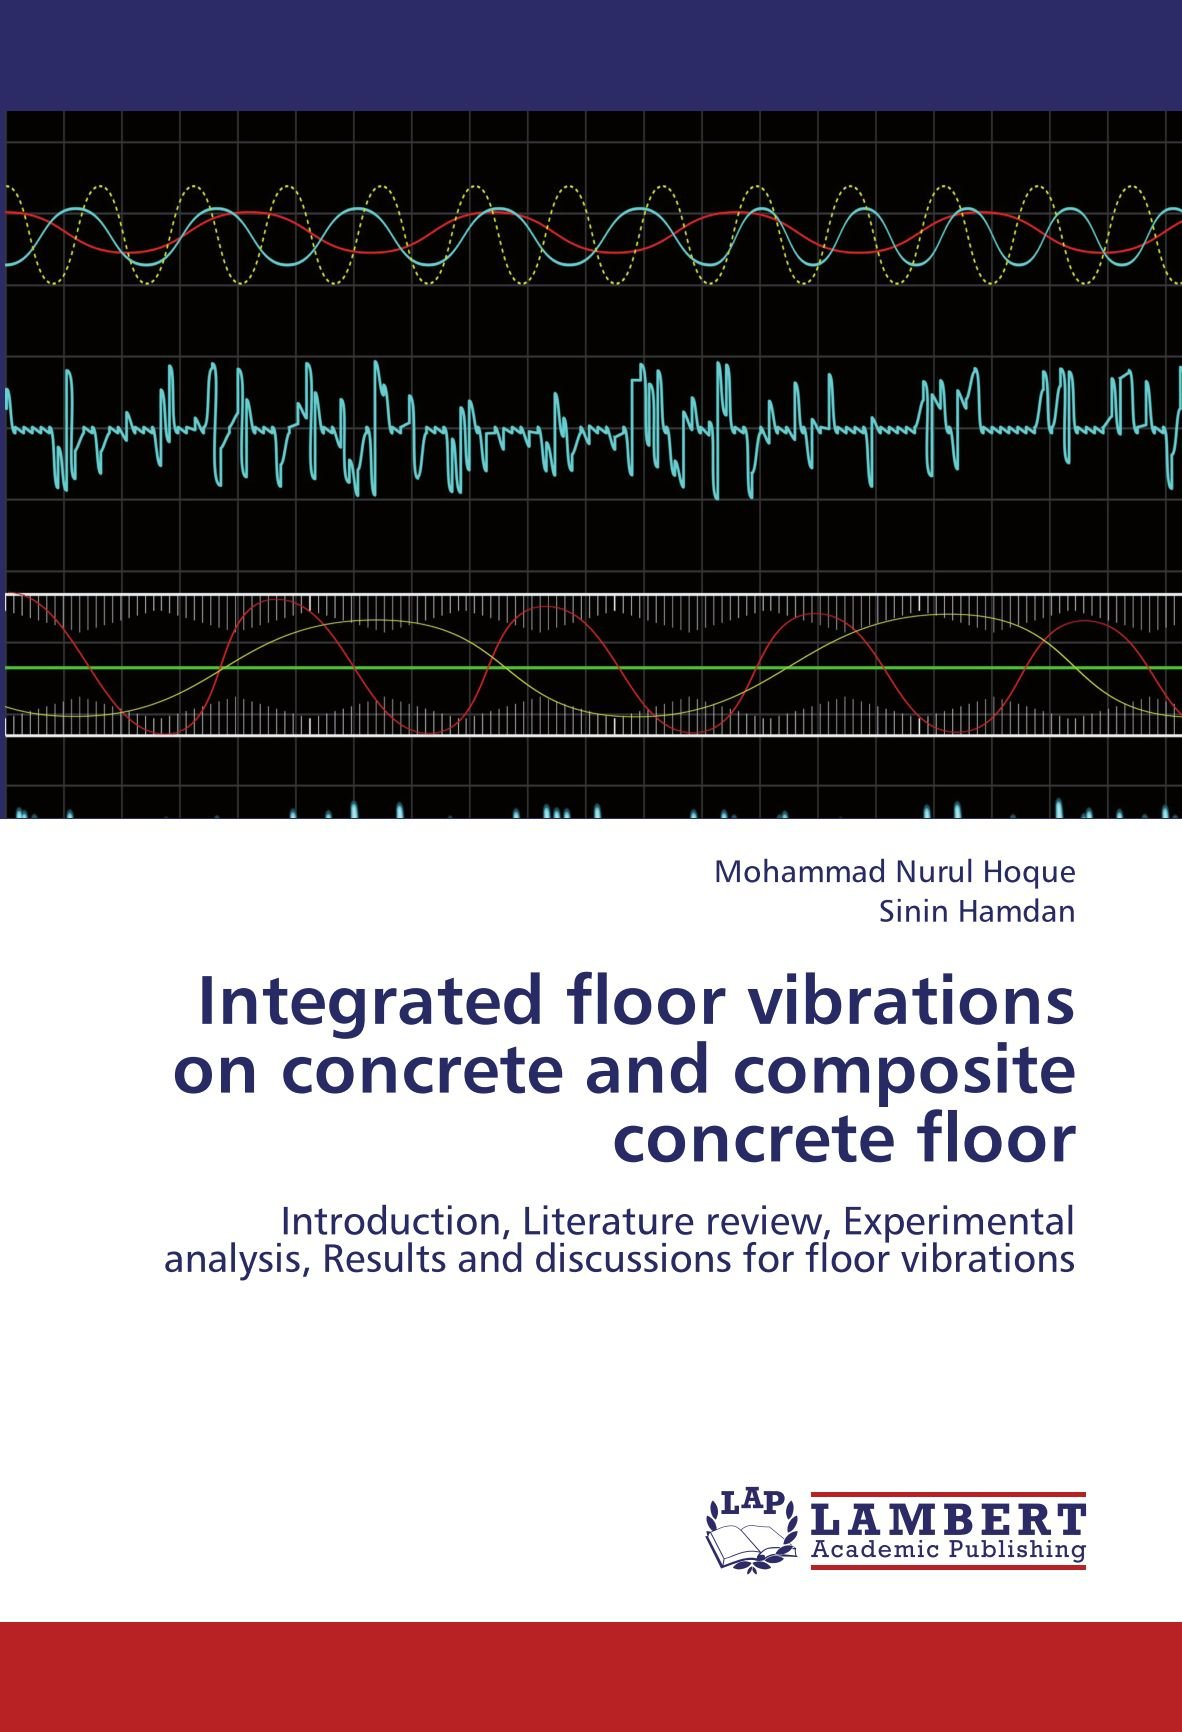 Read Online Integrated floor vibrations on concrete and composite concrete floor: Introduction, Literature review, Experimental analysis, Results and discussions for floor vibrations PDF